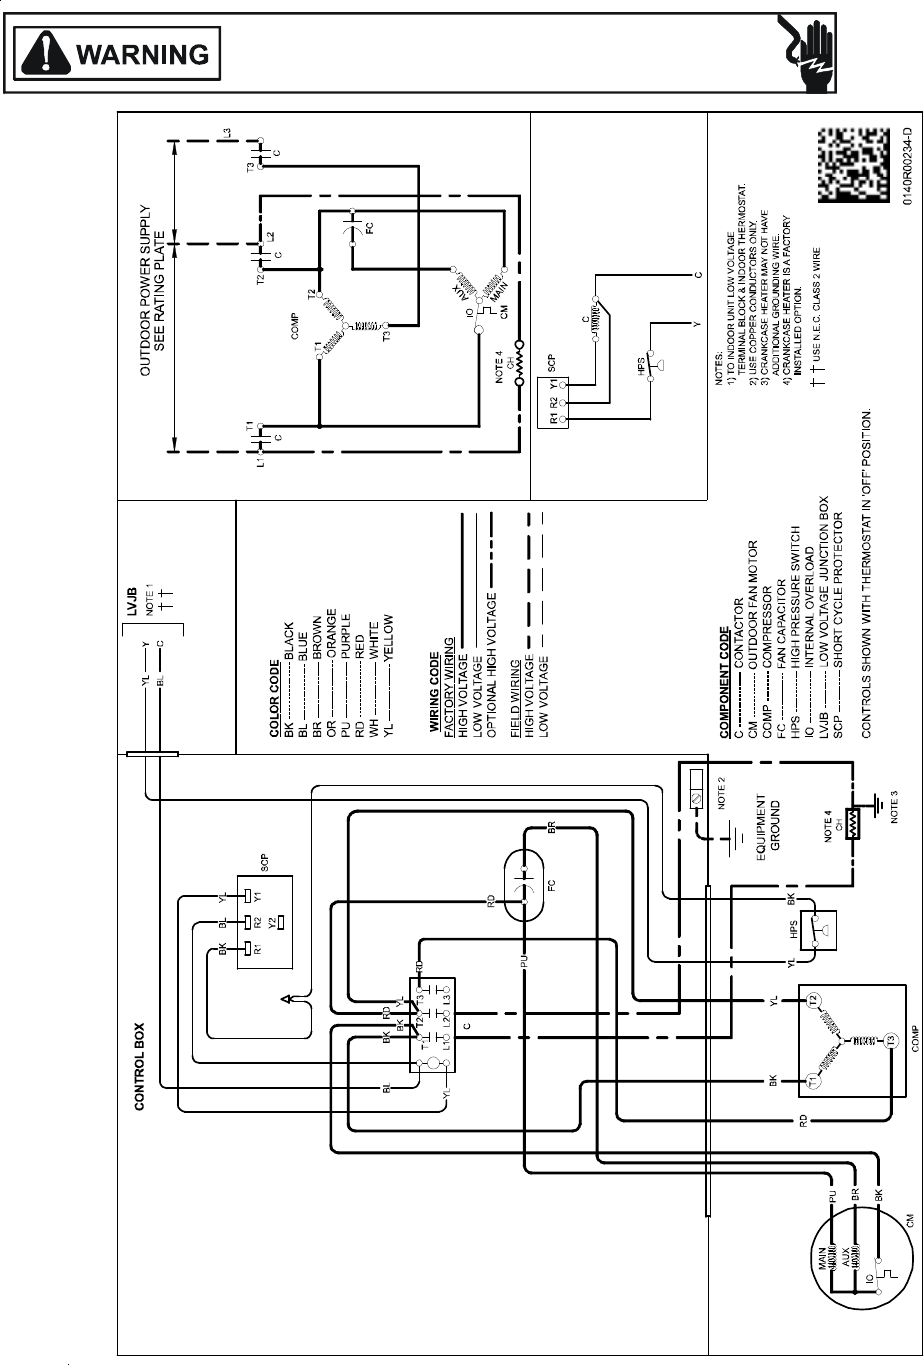 01ae4219 1c37 407a b2d5 49c2253cfc19 bg15 condensing unit wiring diagram damper wiring diagram \u2022 free wiring goodman ac wiring diagram at bakdesigns.co